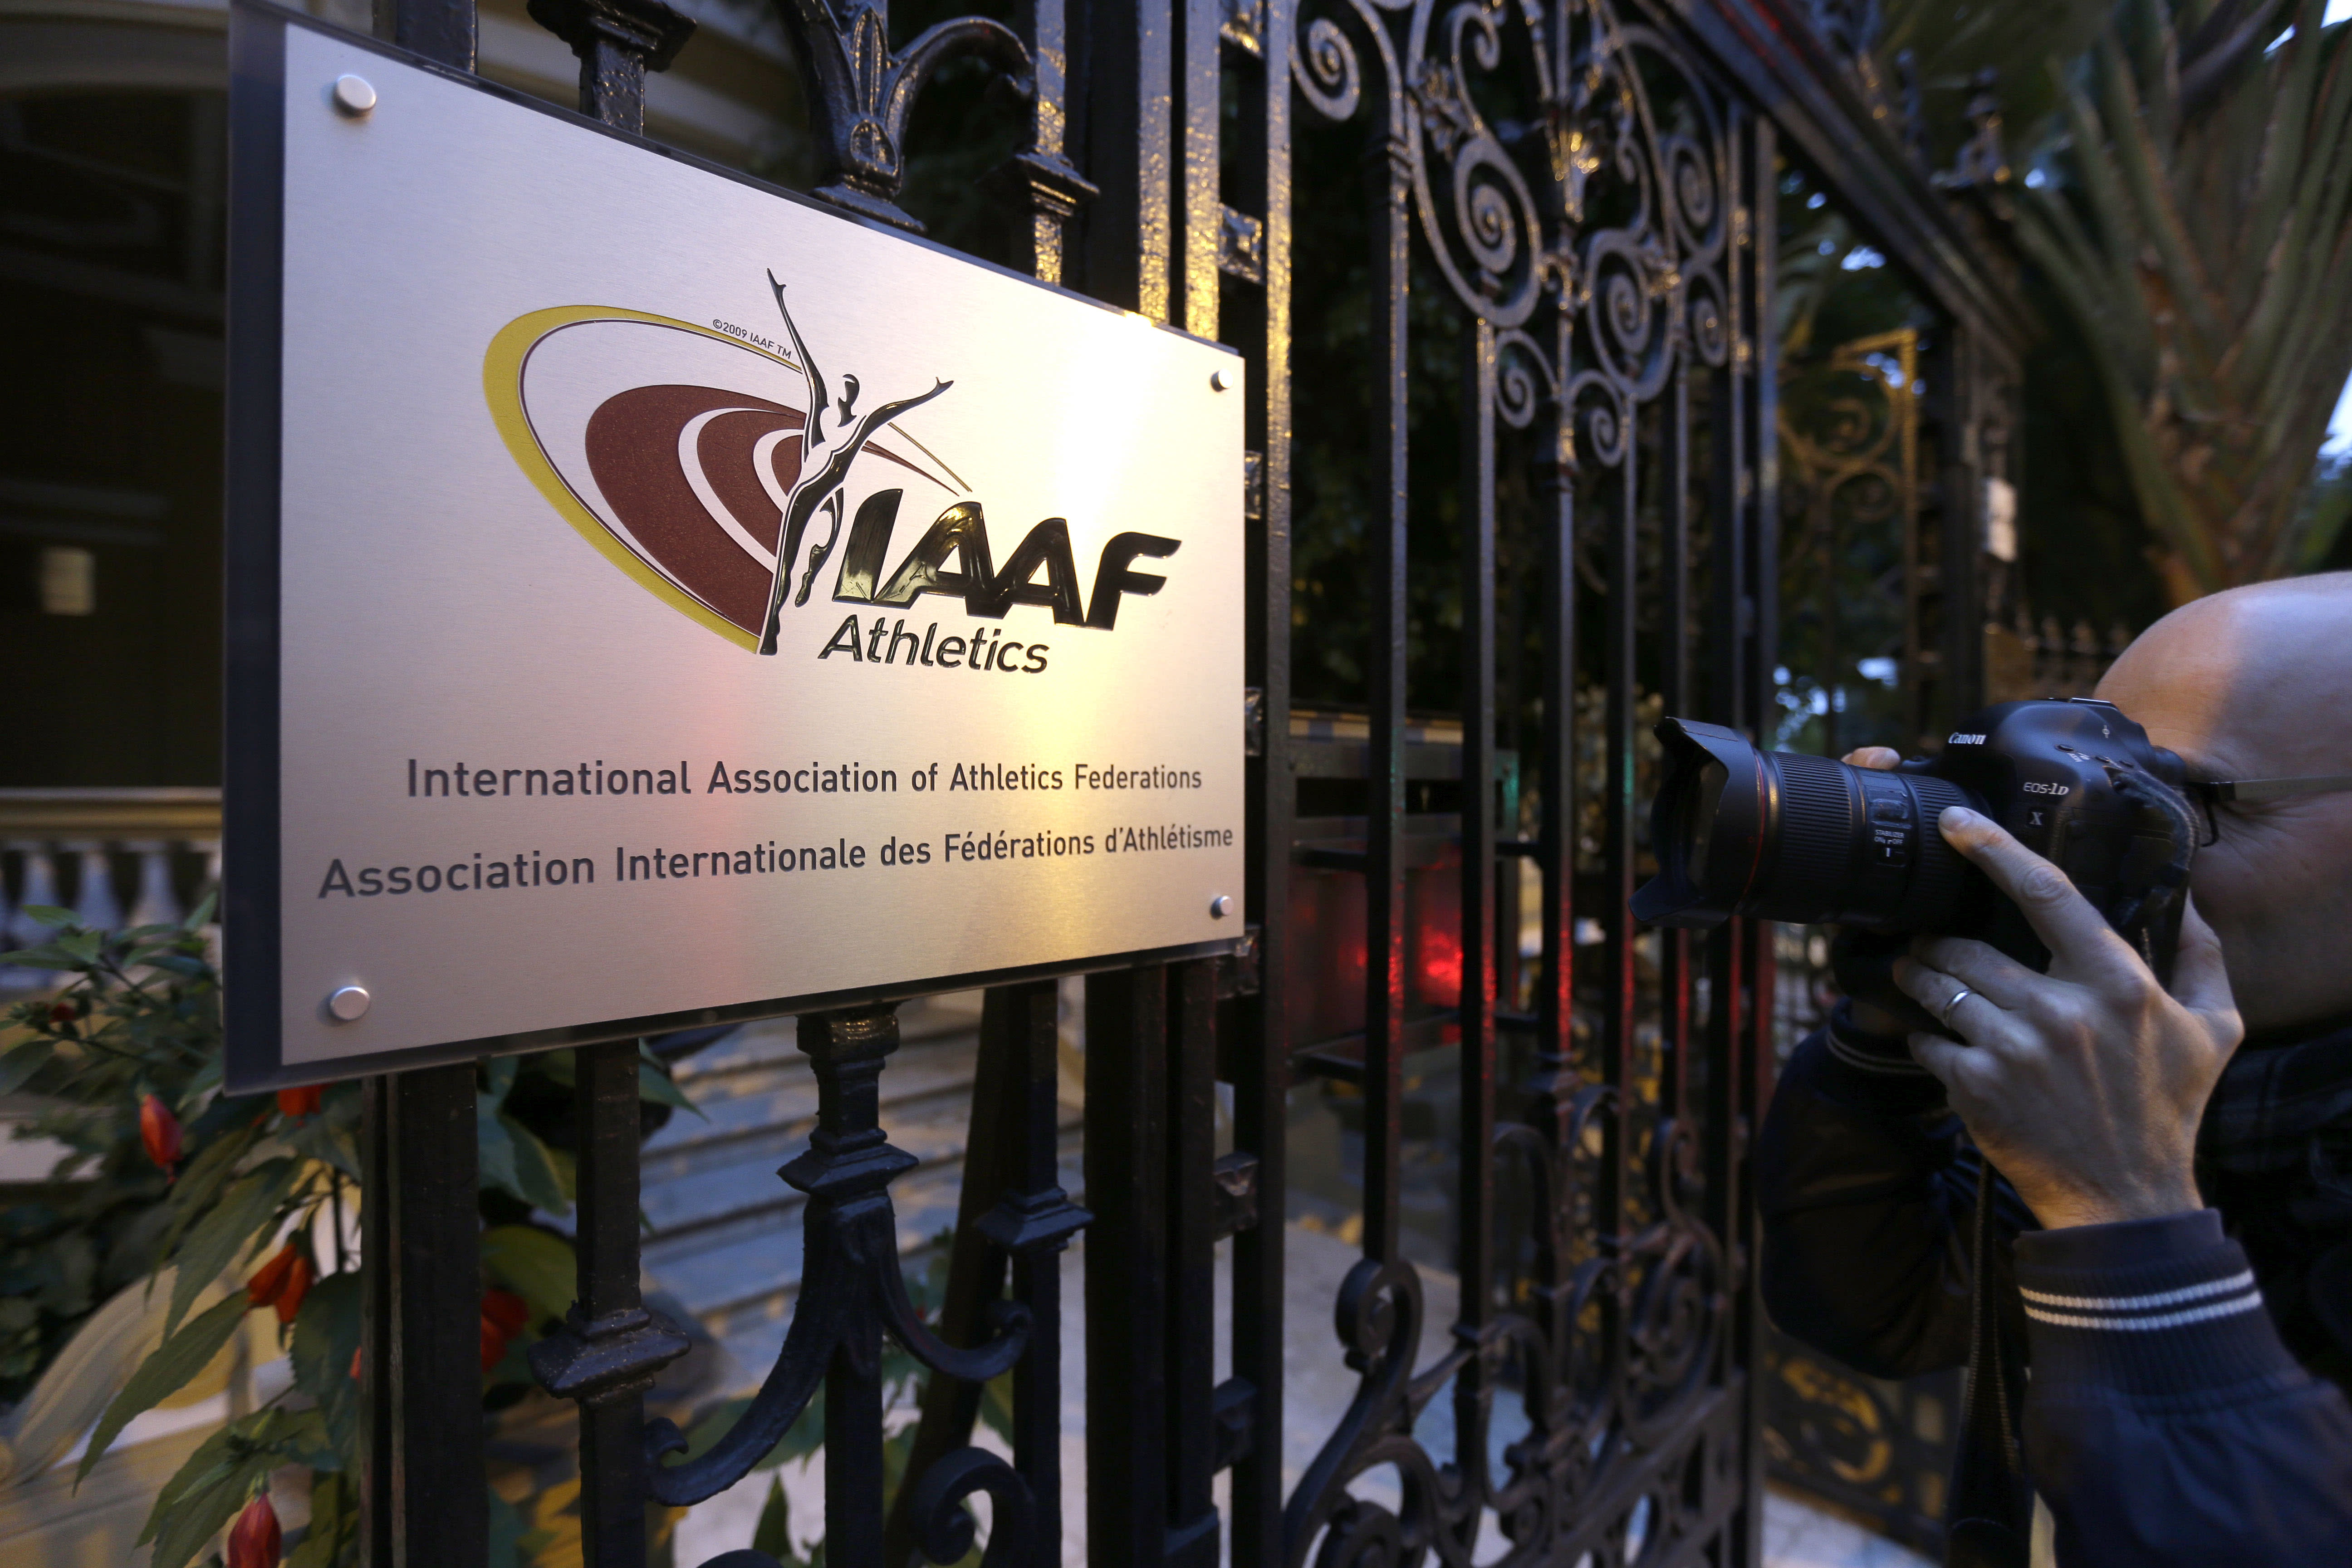 Coe faces difficult questions at IAAF meeting